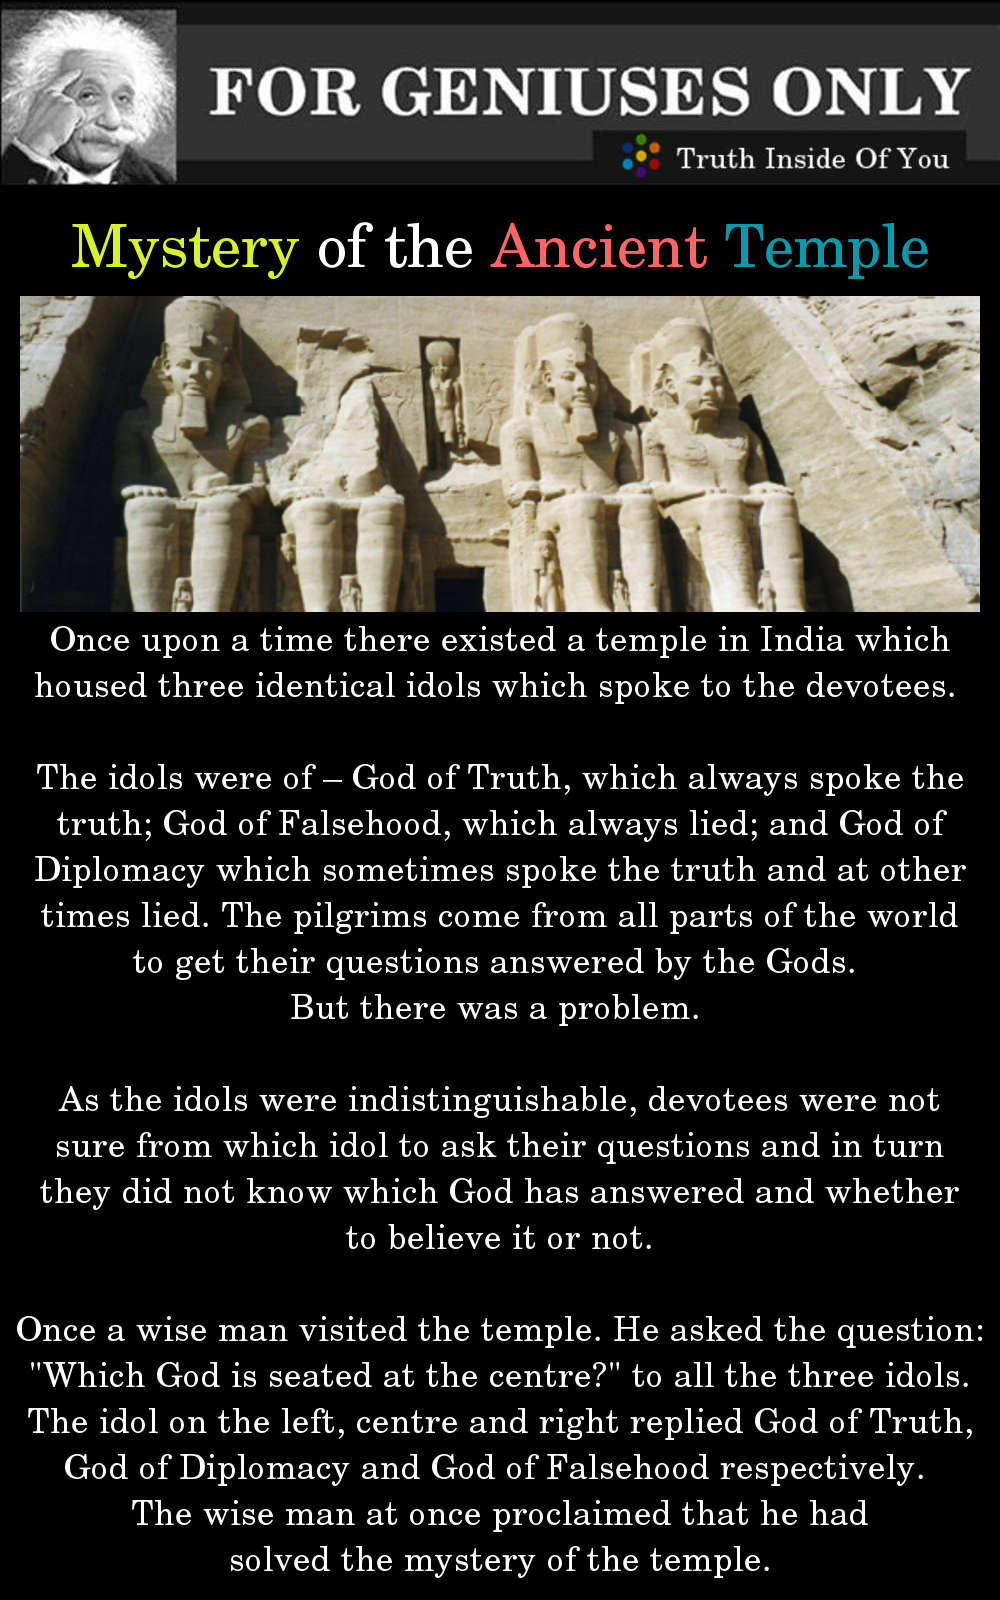 Mystery of the Ancient Temple